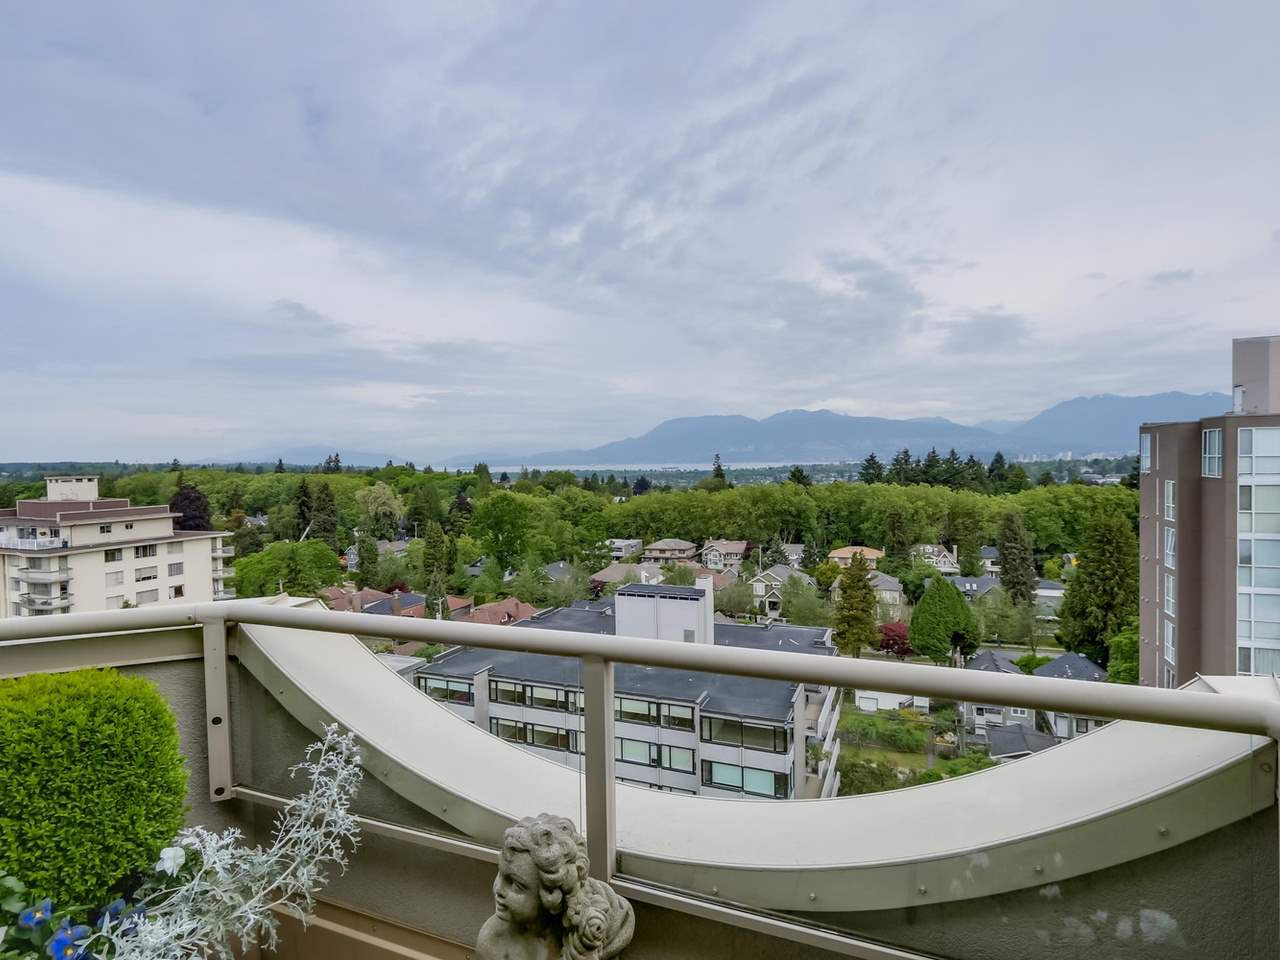 """Photo 18: Photos: PH1 2108 W 38TH Avenue in Vancouver: Kerrisdale Condo for sale in """"THE WILSHIRE"""" (Vancouver West)  : MLS®# R2072443"""